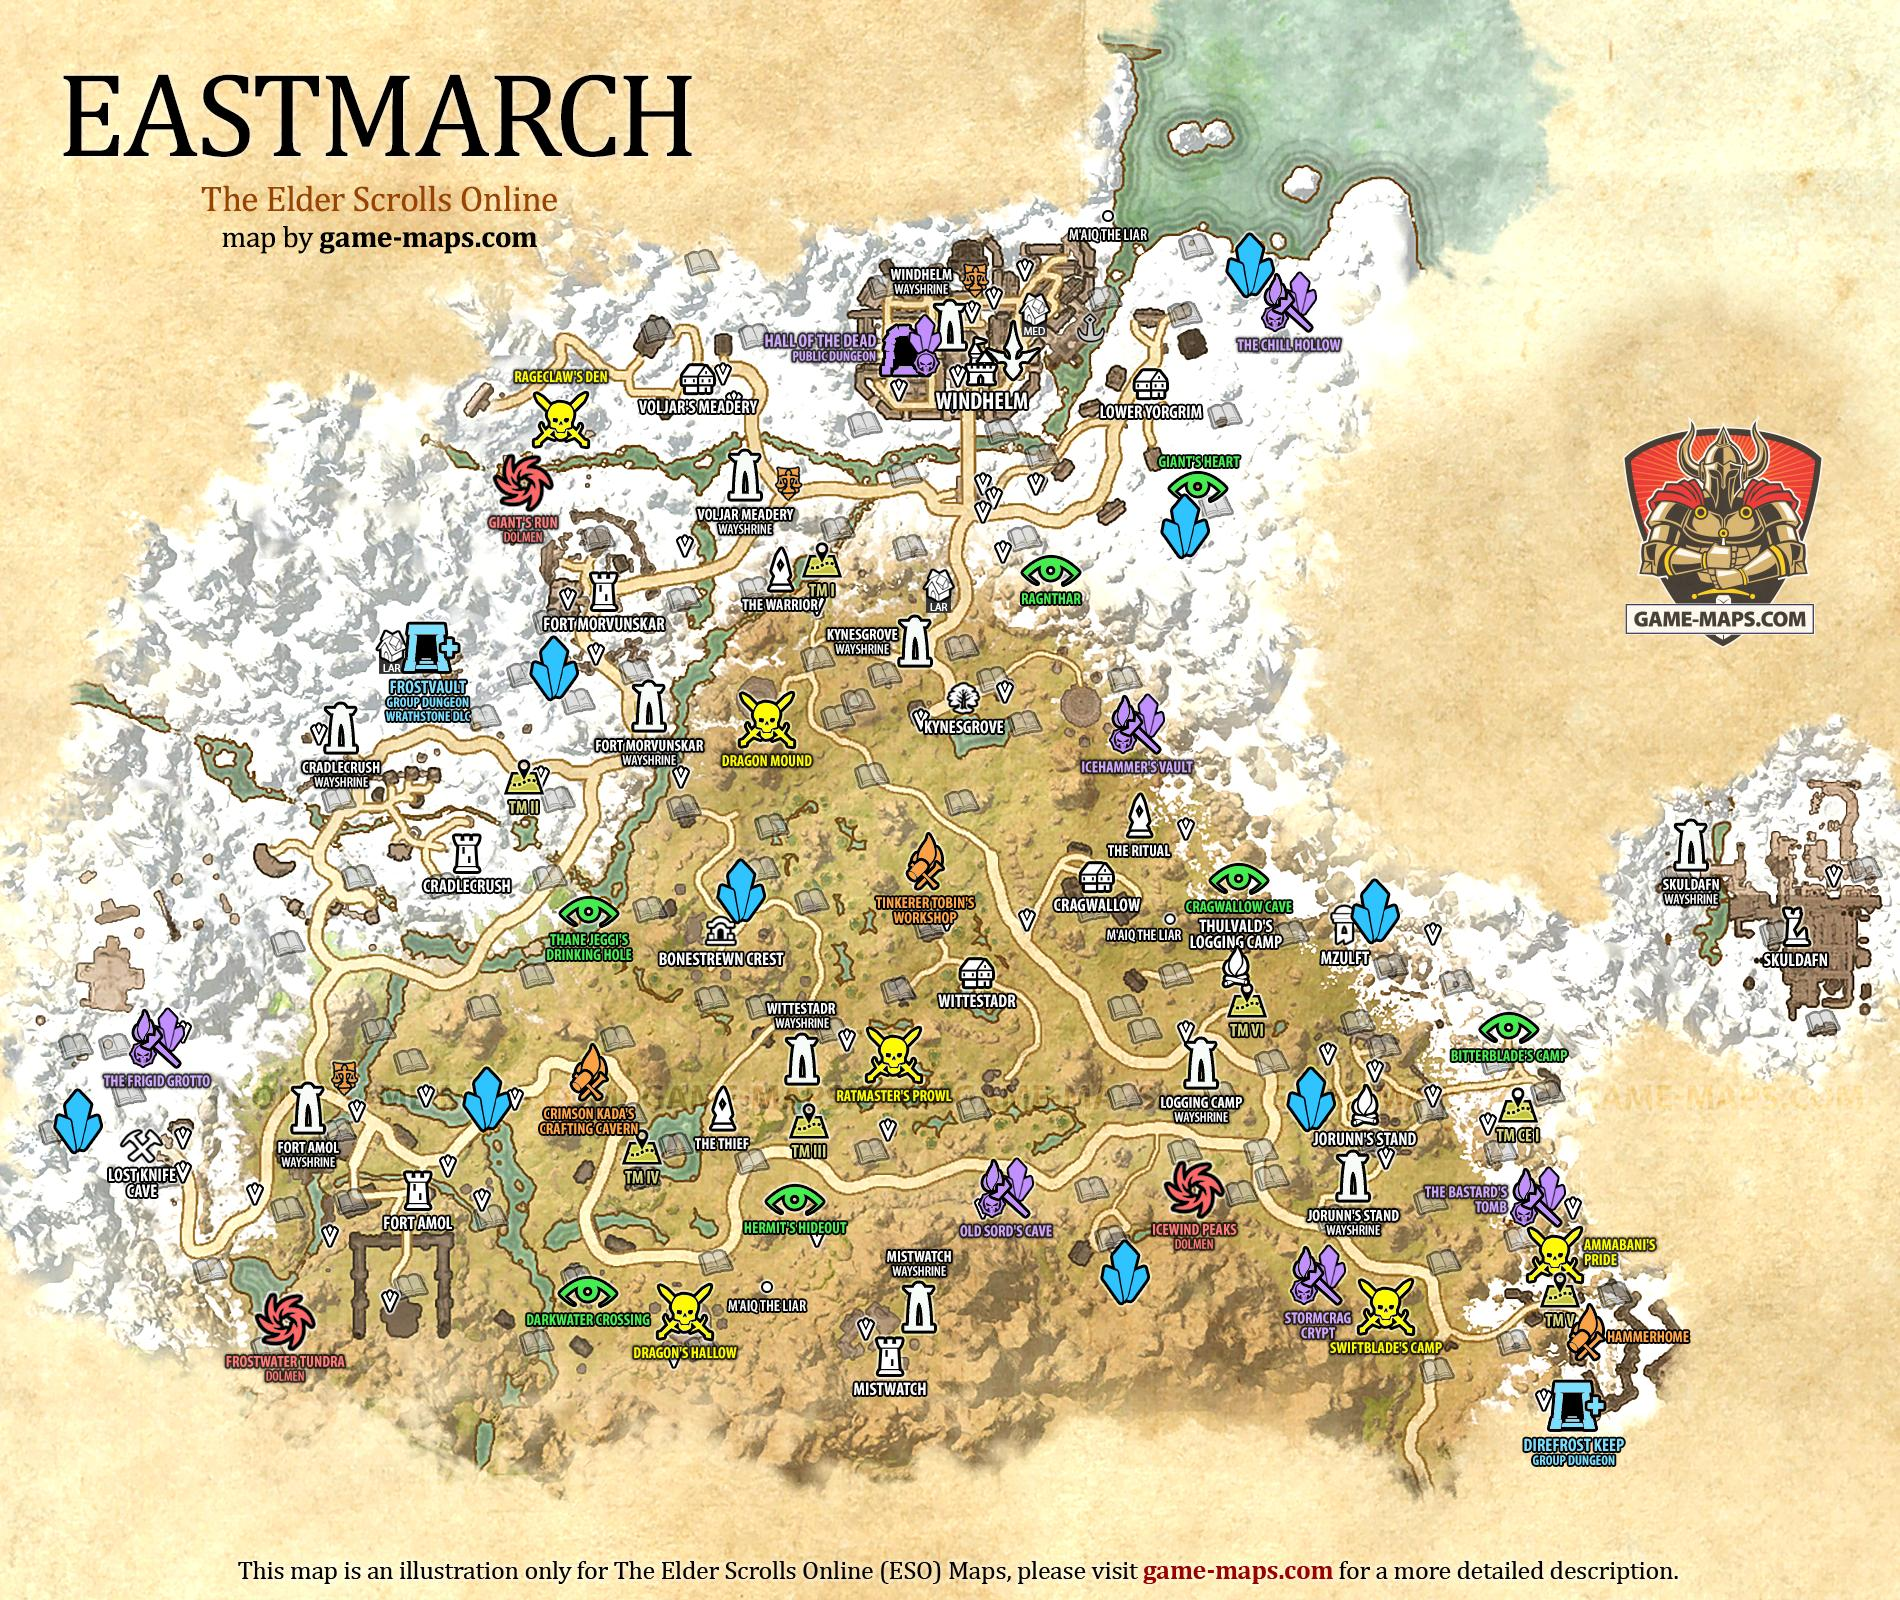 Eastmarch Map - The Elder Scrolls Online | game-maps.com